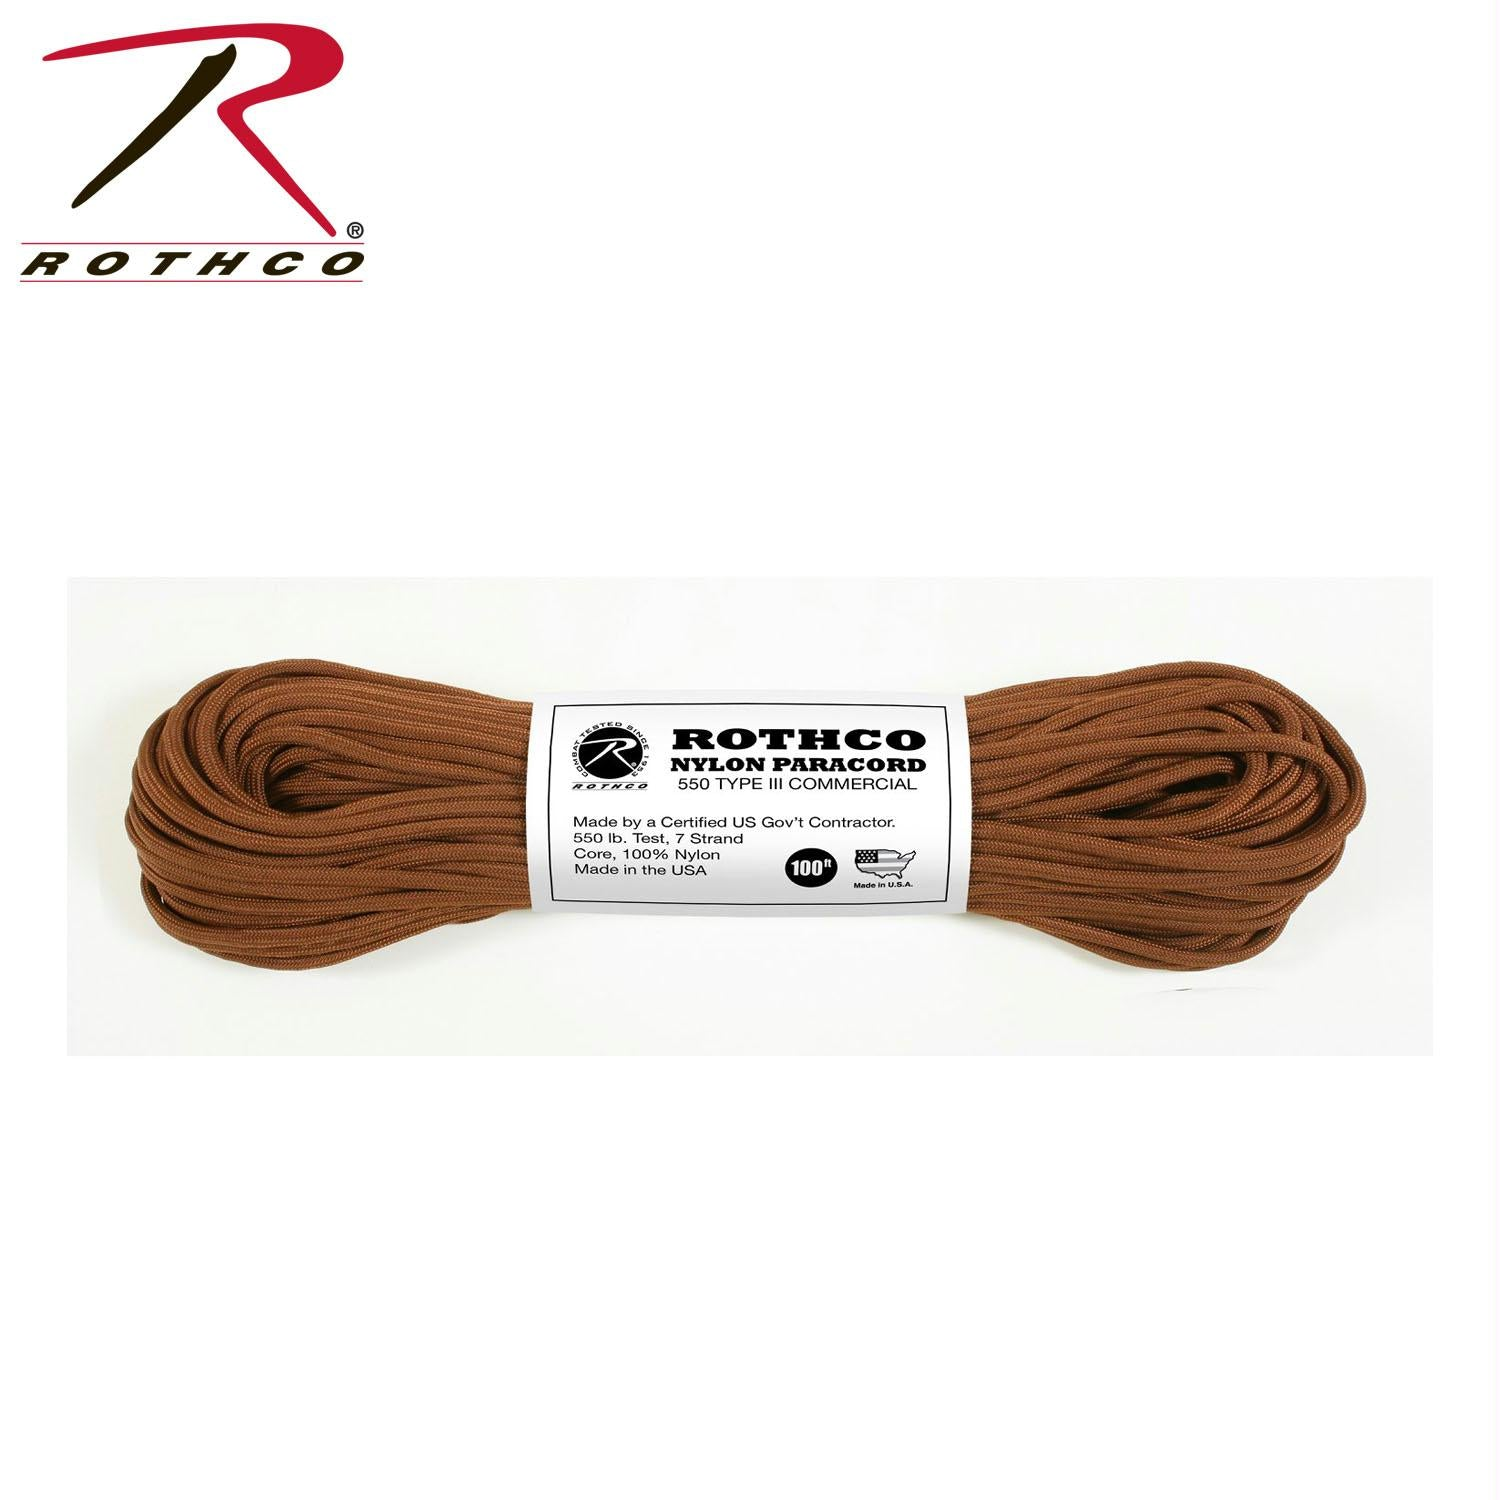 Rothco Nylon Paracord Type III 550 LB 100FT - Chocolate Brown